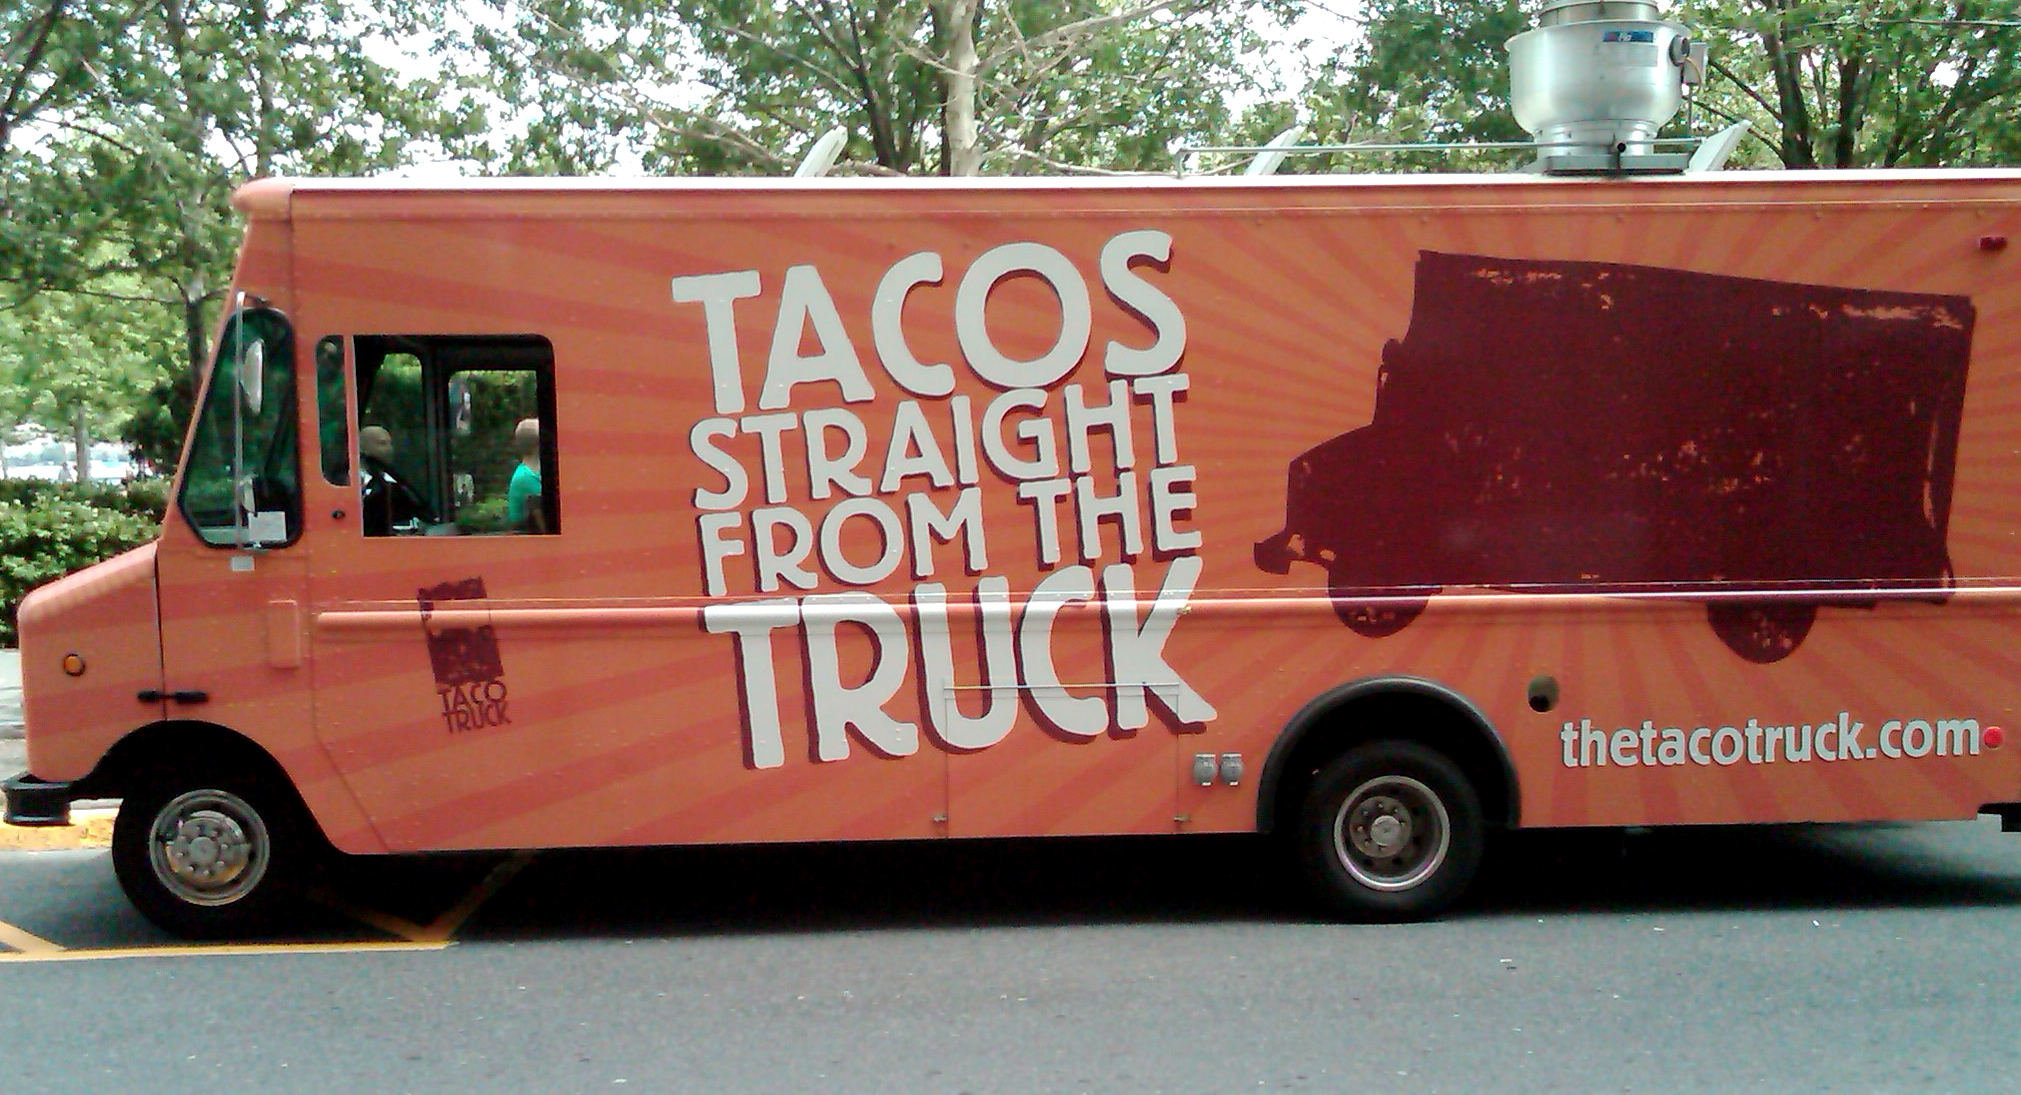 The Taco Truck parked